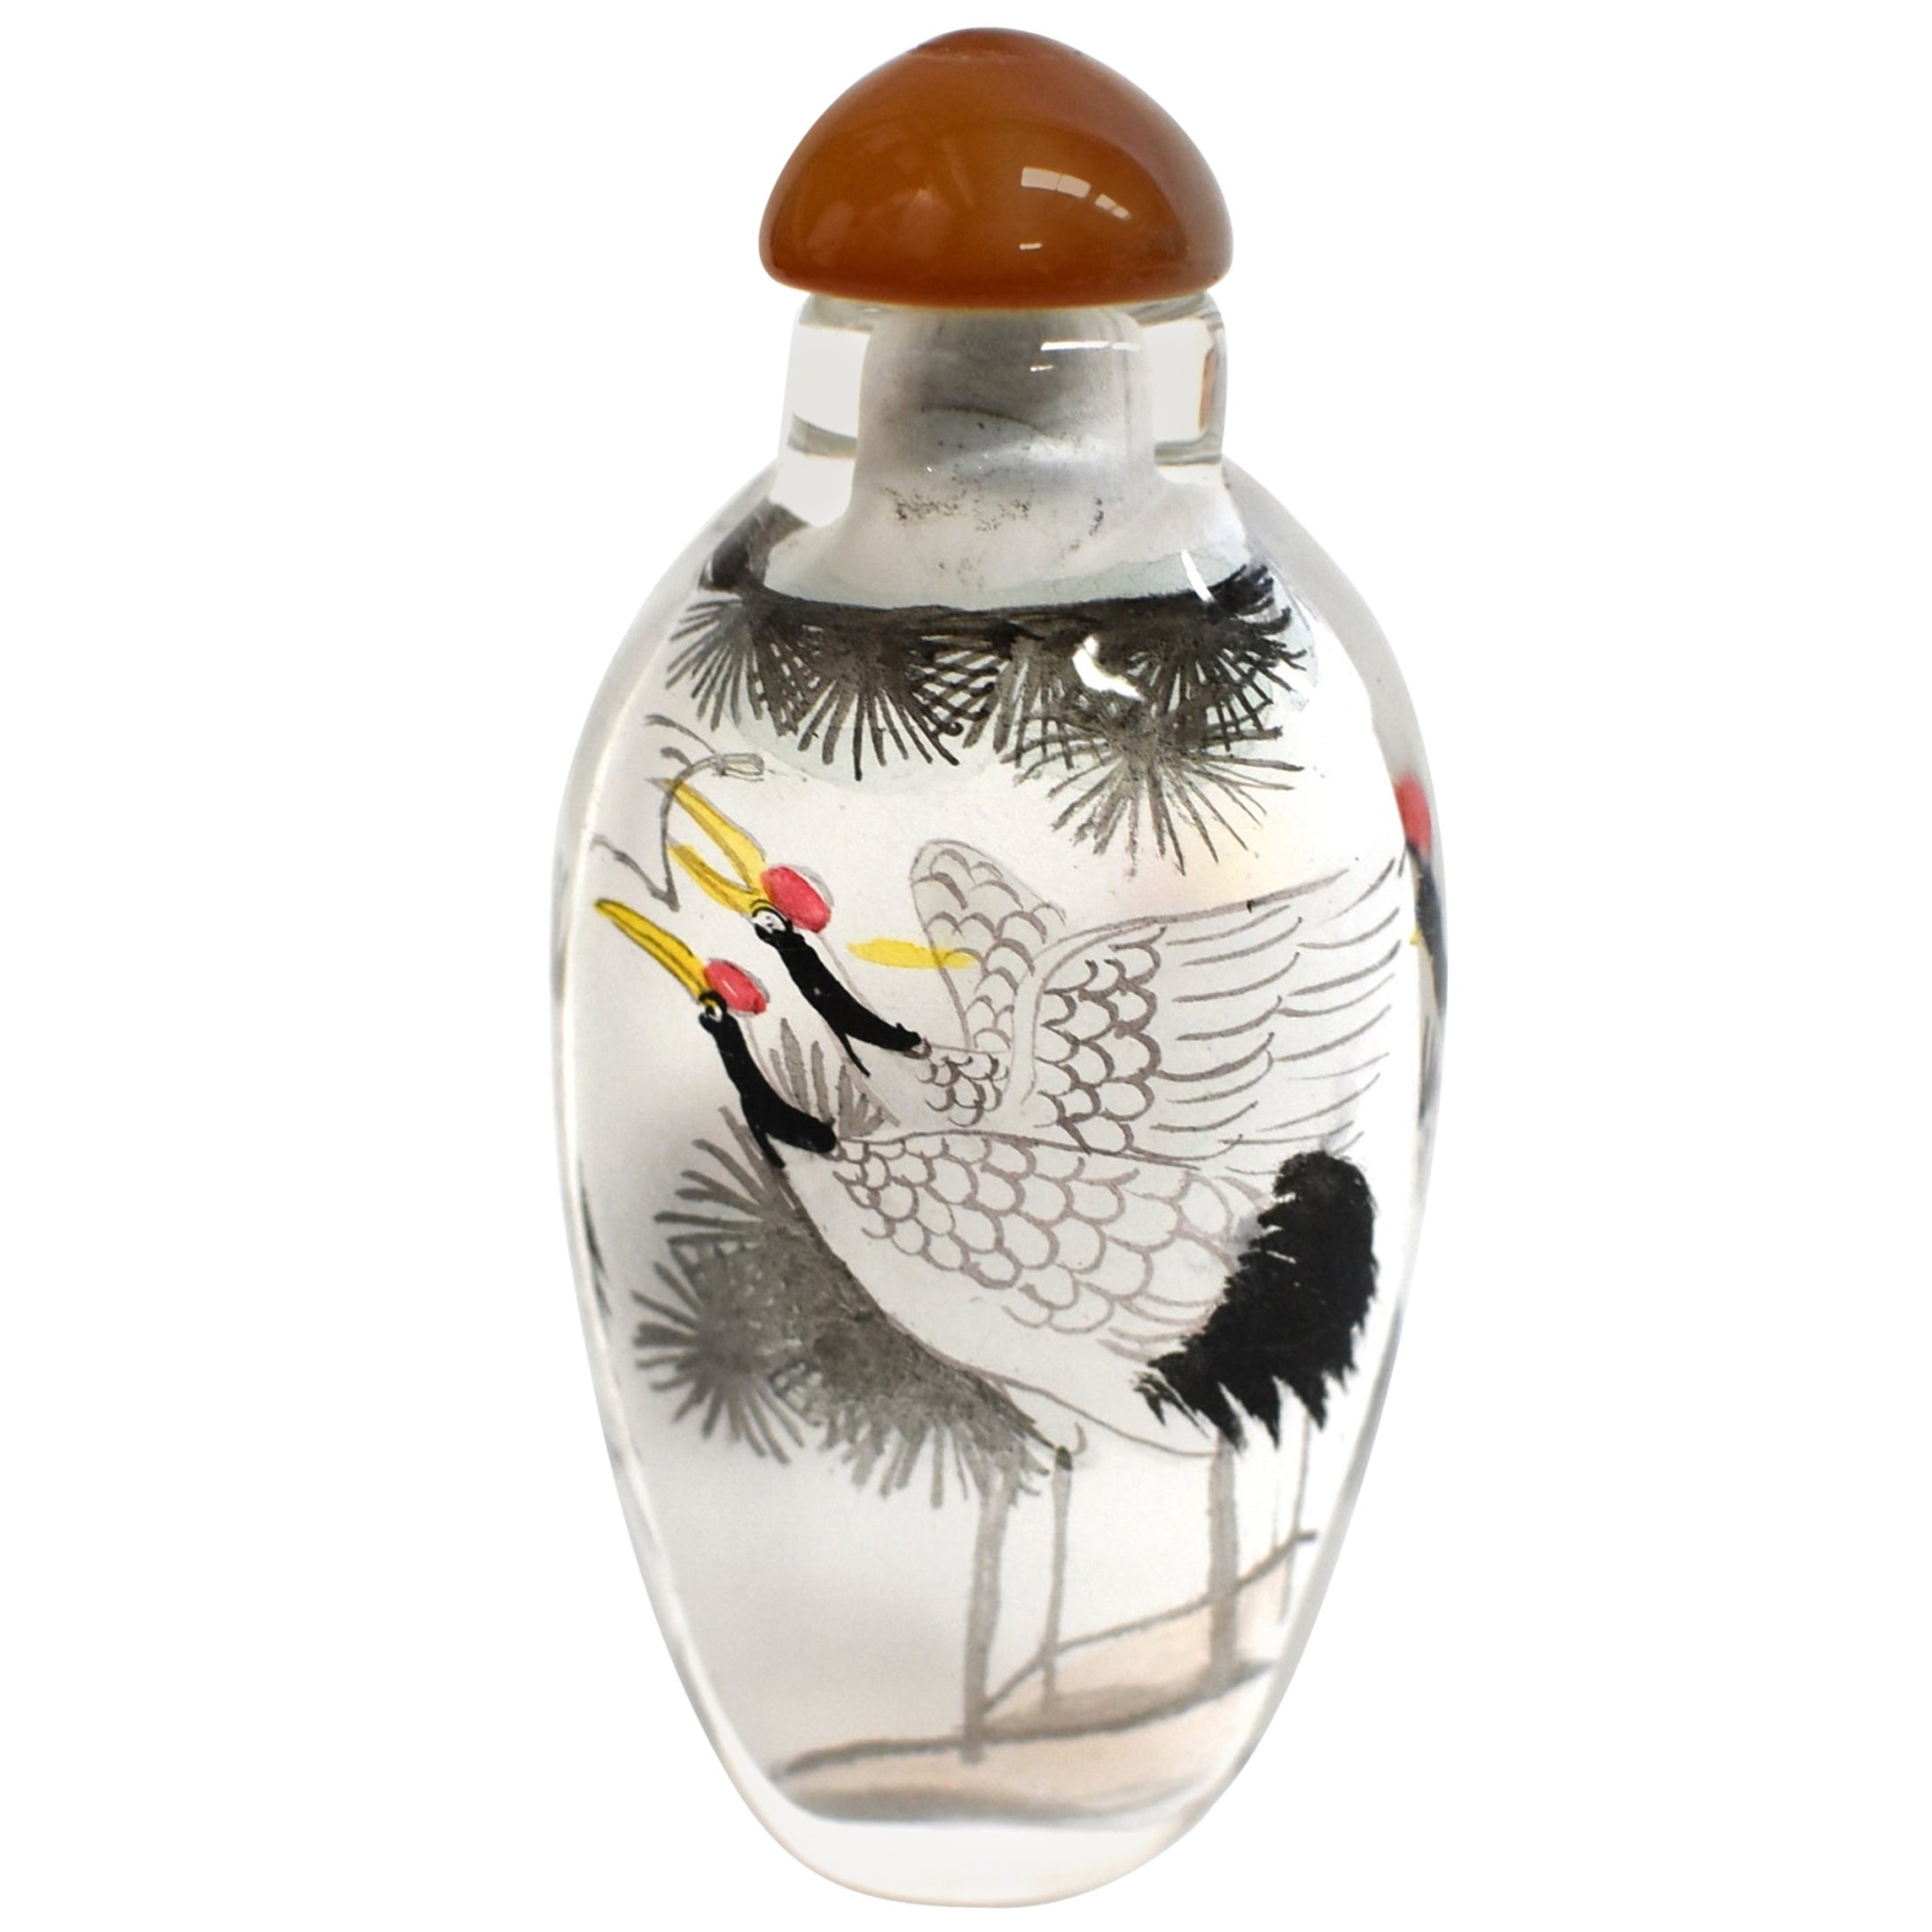 Reverse Painted Snuff Bottle with Crane